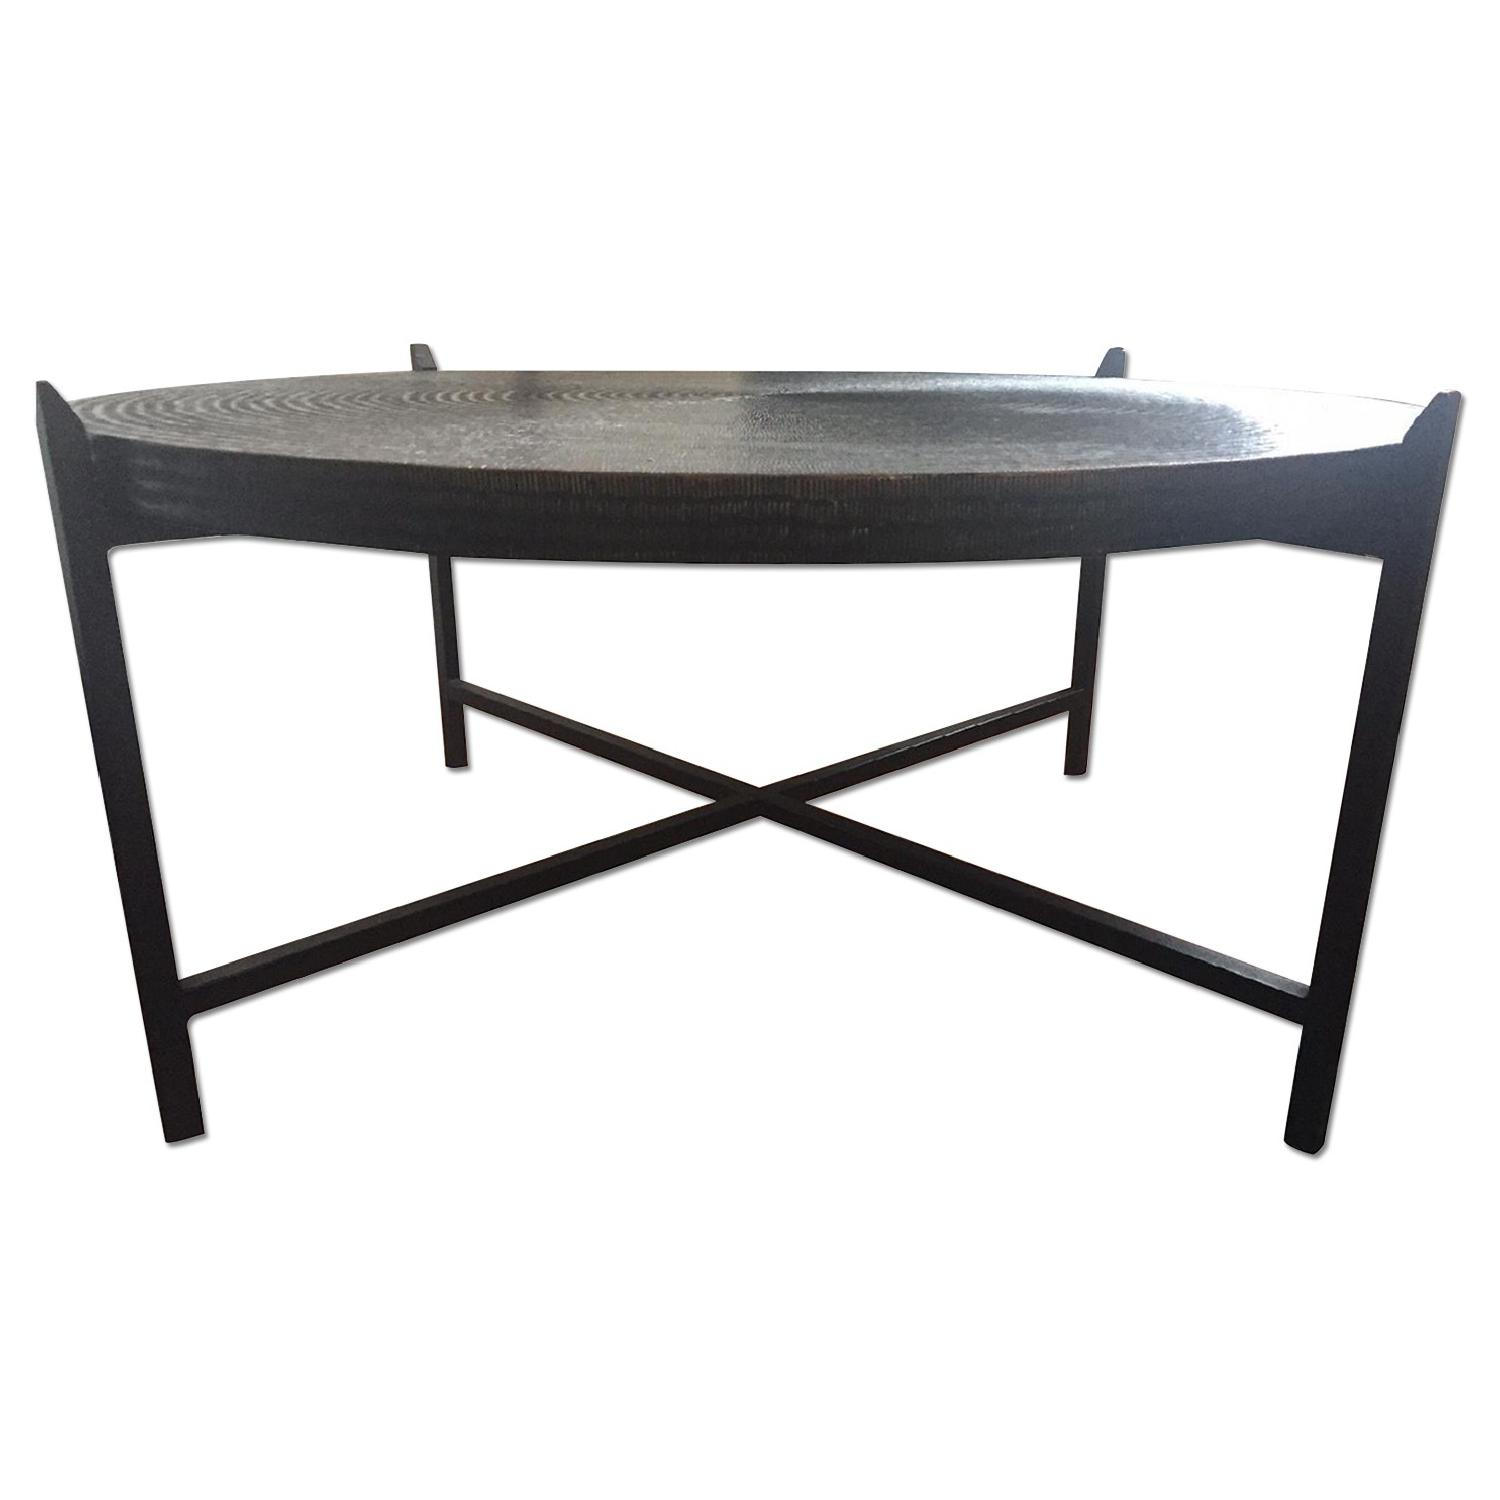 Crate & Barrel Sanskrit Copper Coffee Table